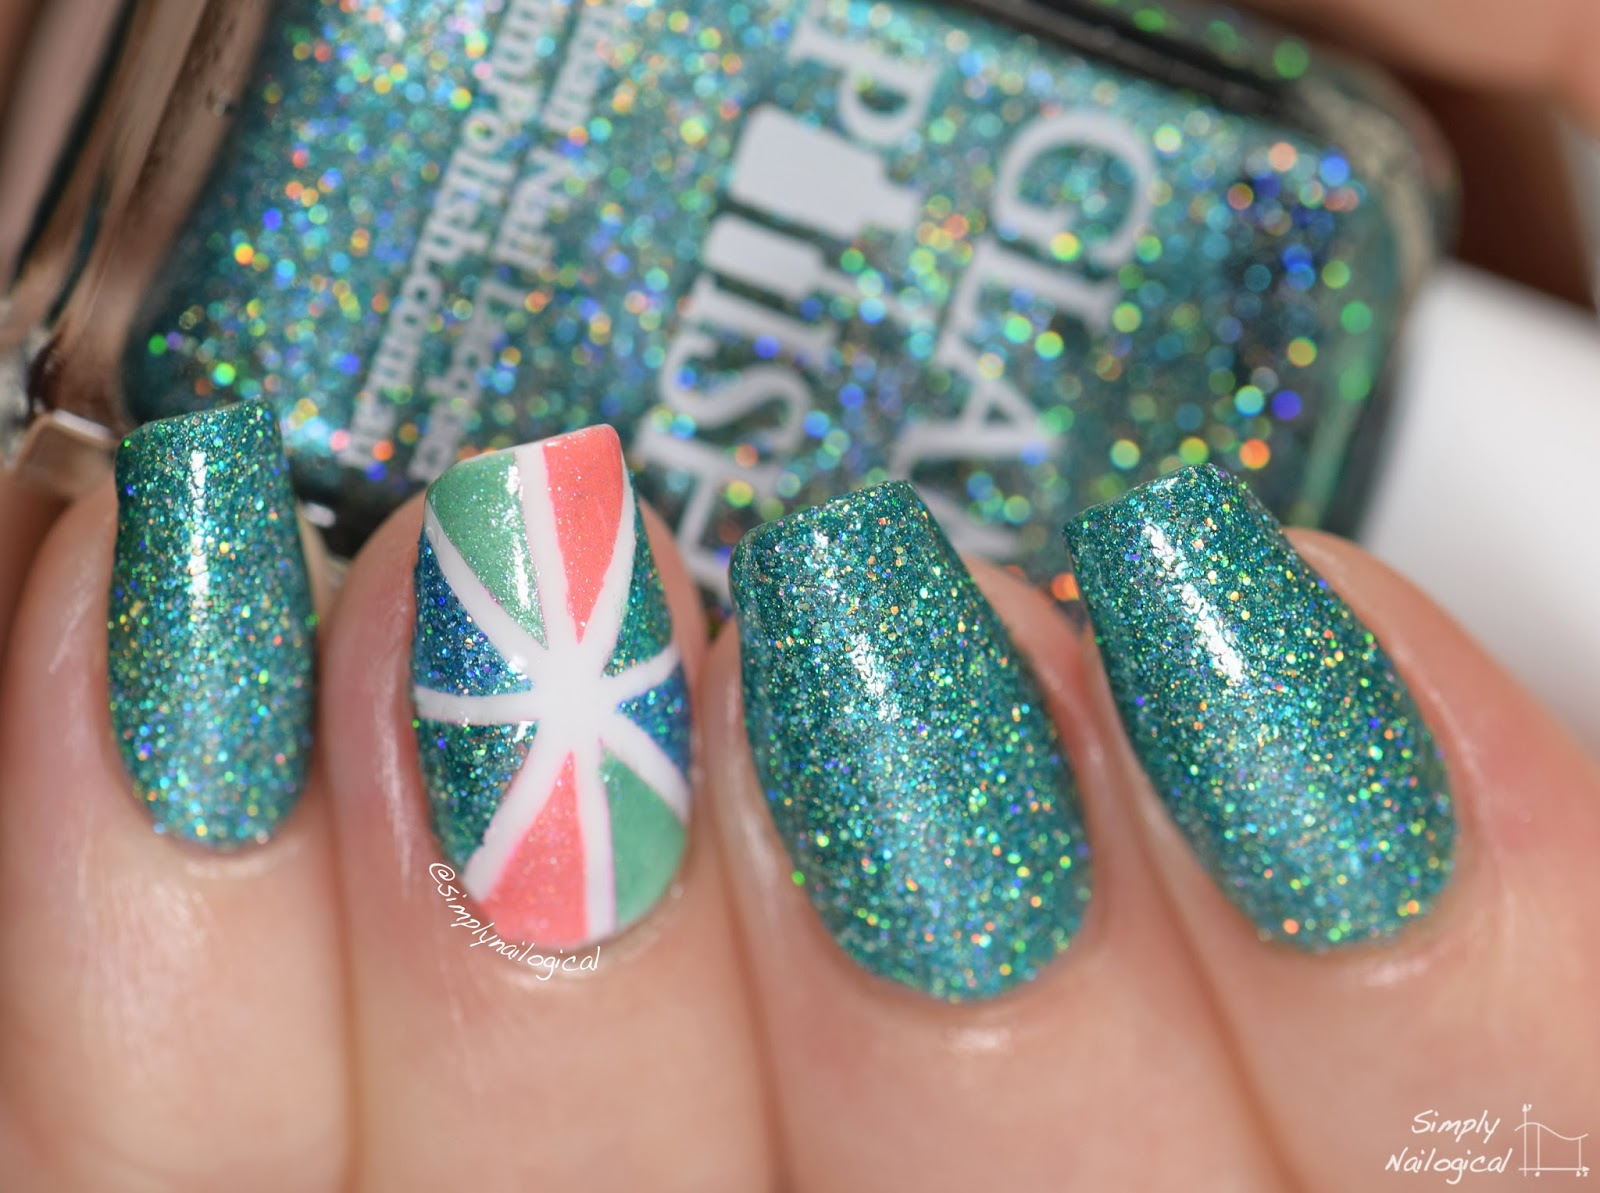 Glam Polish December 2014 Polar lights swatch